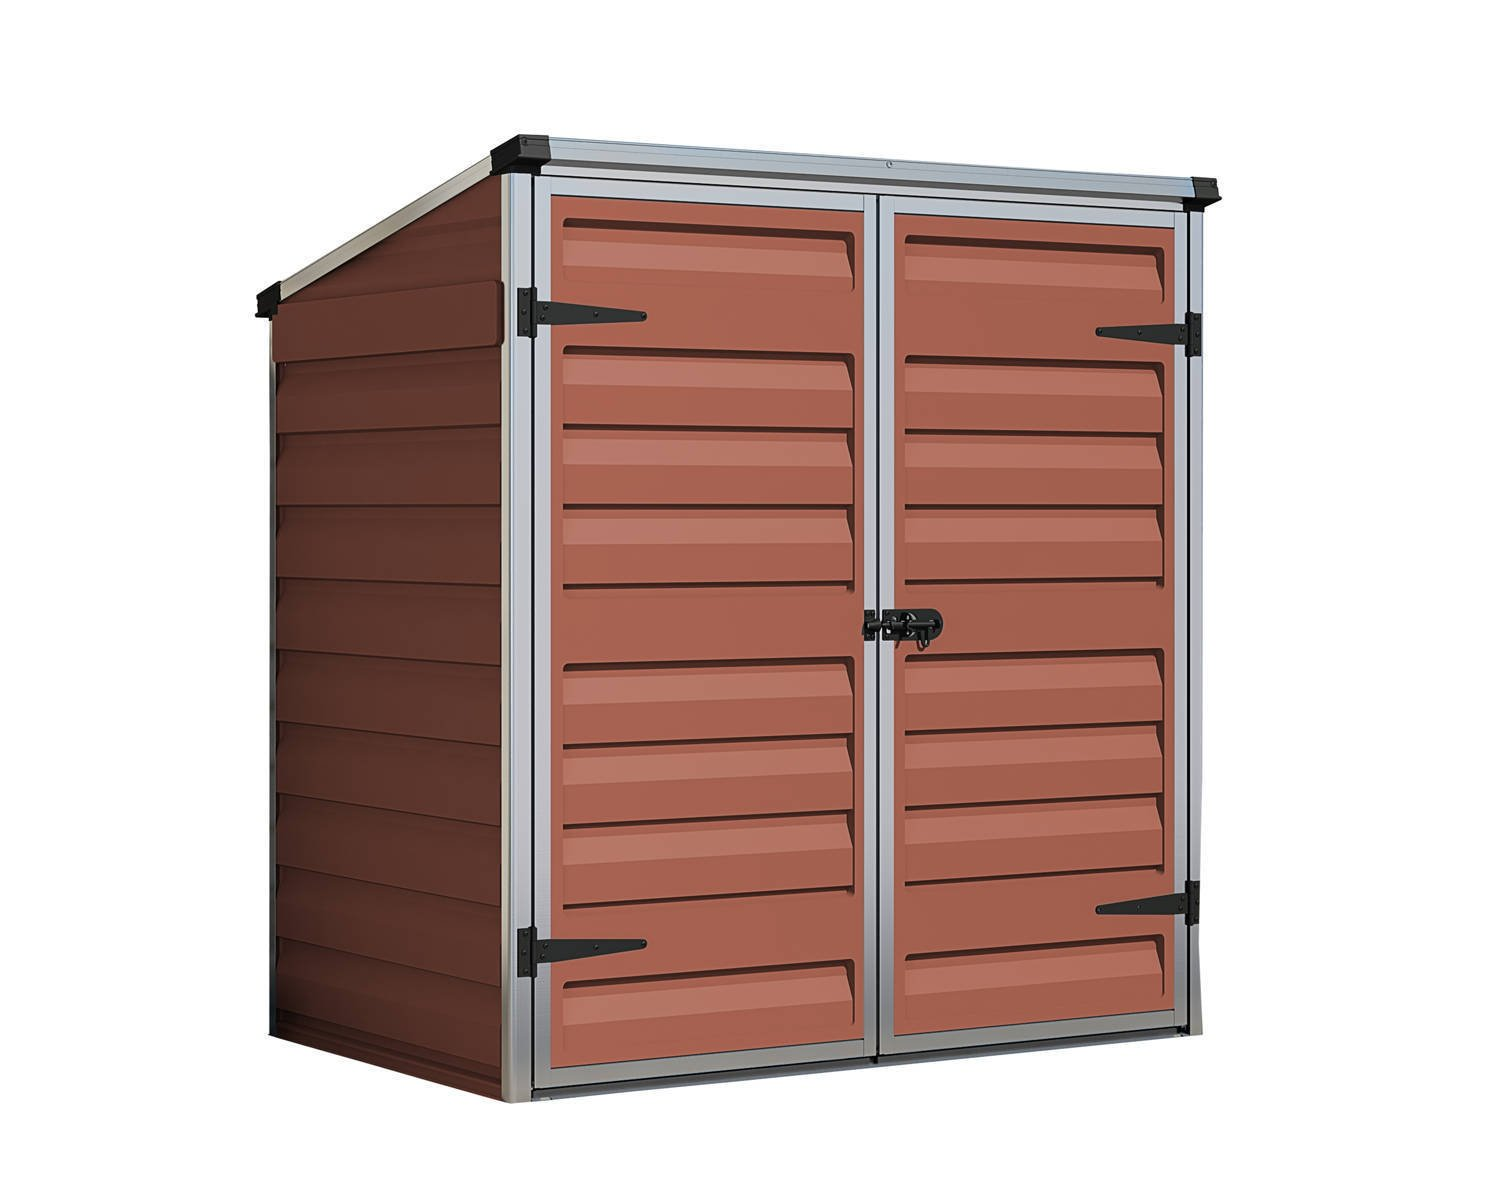 Palram voyager 4x3 plastic storage unit amber for Sheds and storage units